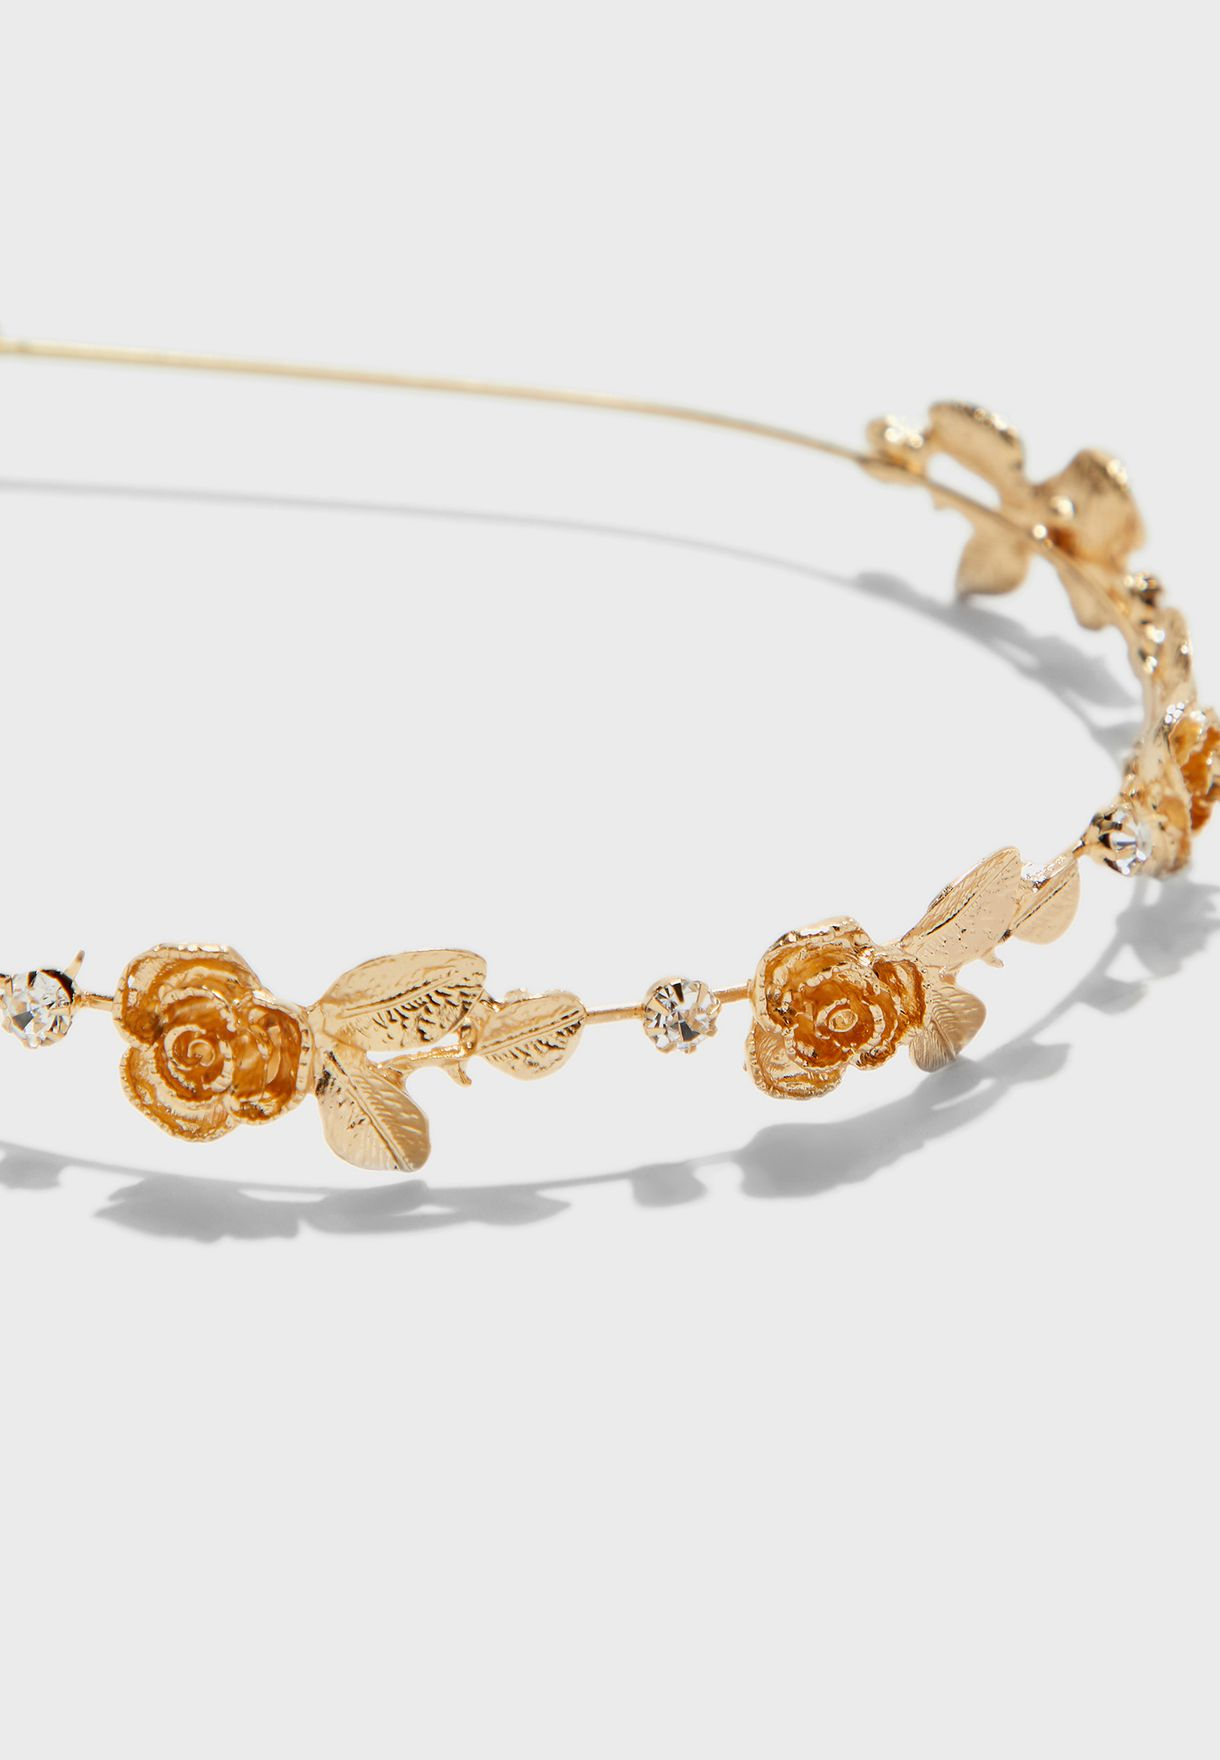 Floral Embellished Hairband In Metallic